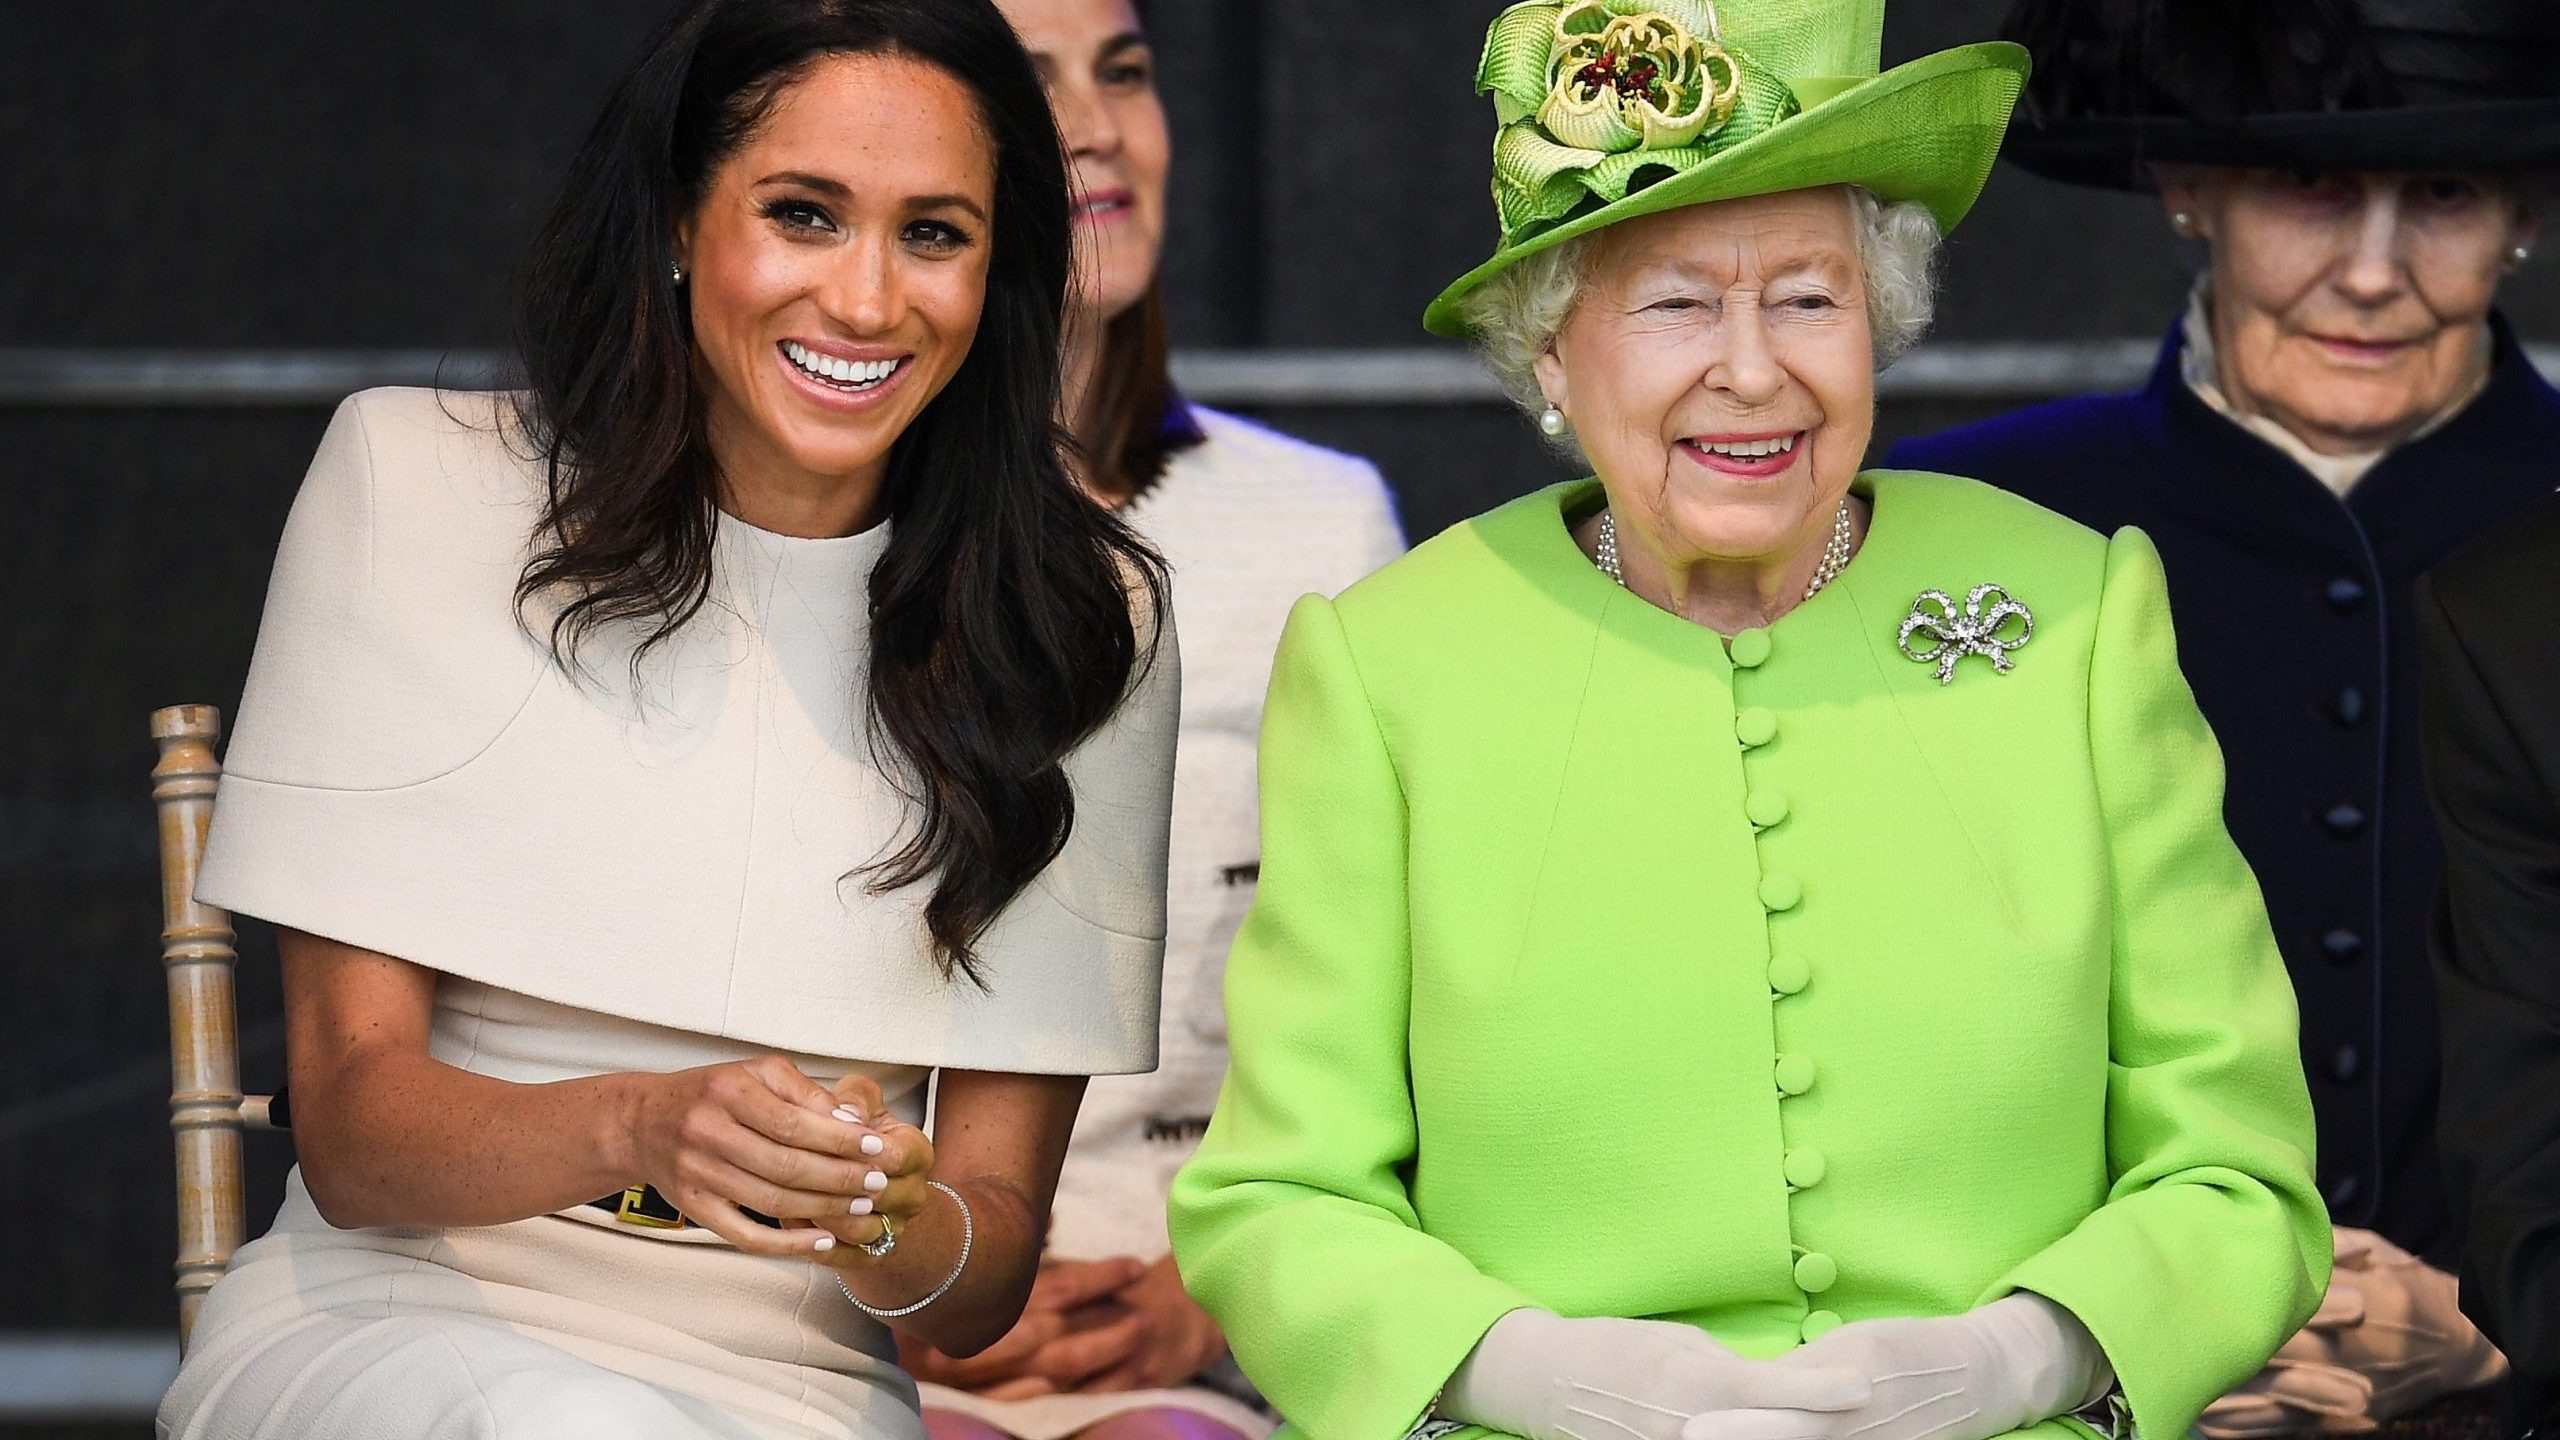 Queen Elizabeth II sits with Meghan, Duchess of Sussex, during a ceremony to open the new Mersey Gateway Bridge on June 14, 2018 in the town of Widnes in Halton, Cheshire, England. (Credit: Jeff J Mitchell/Getty Images)